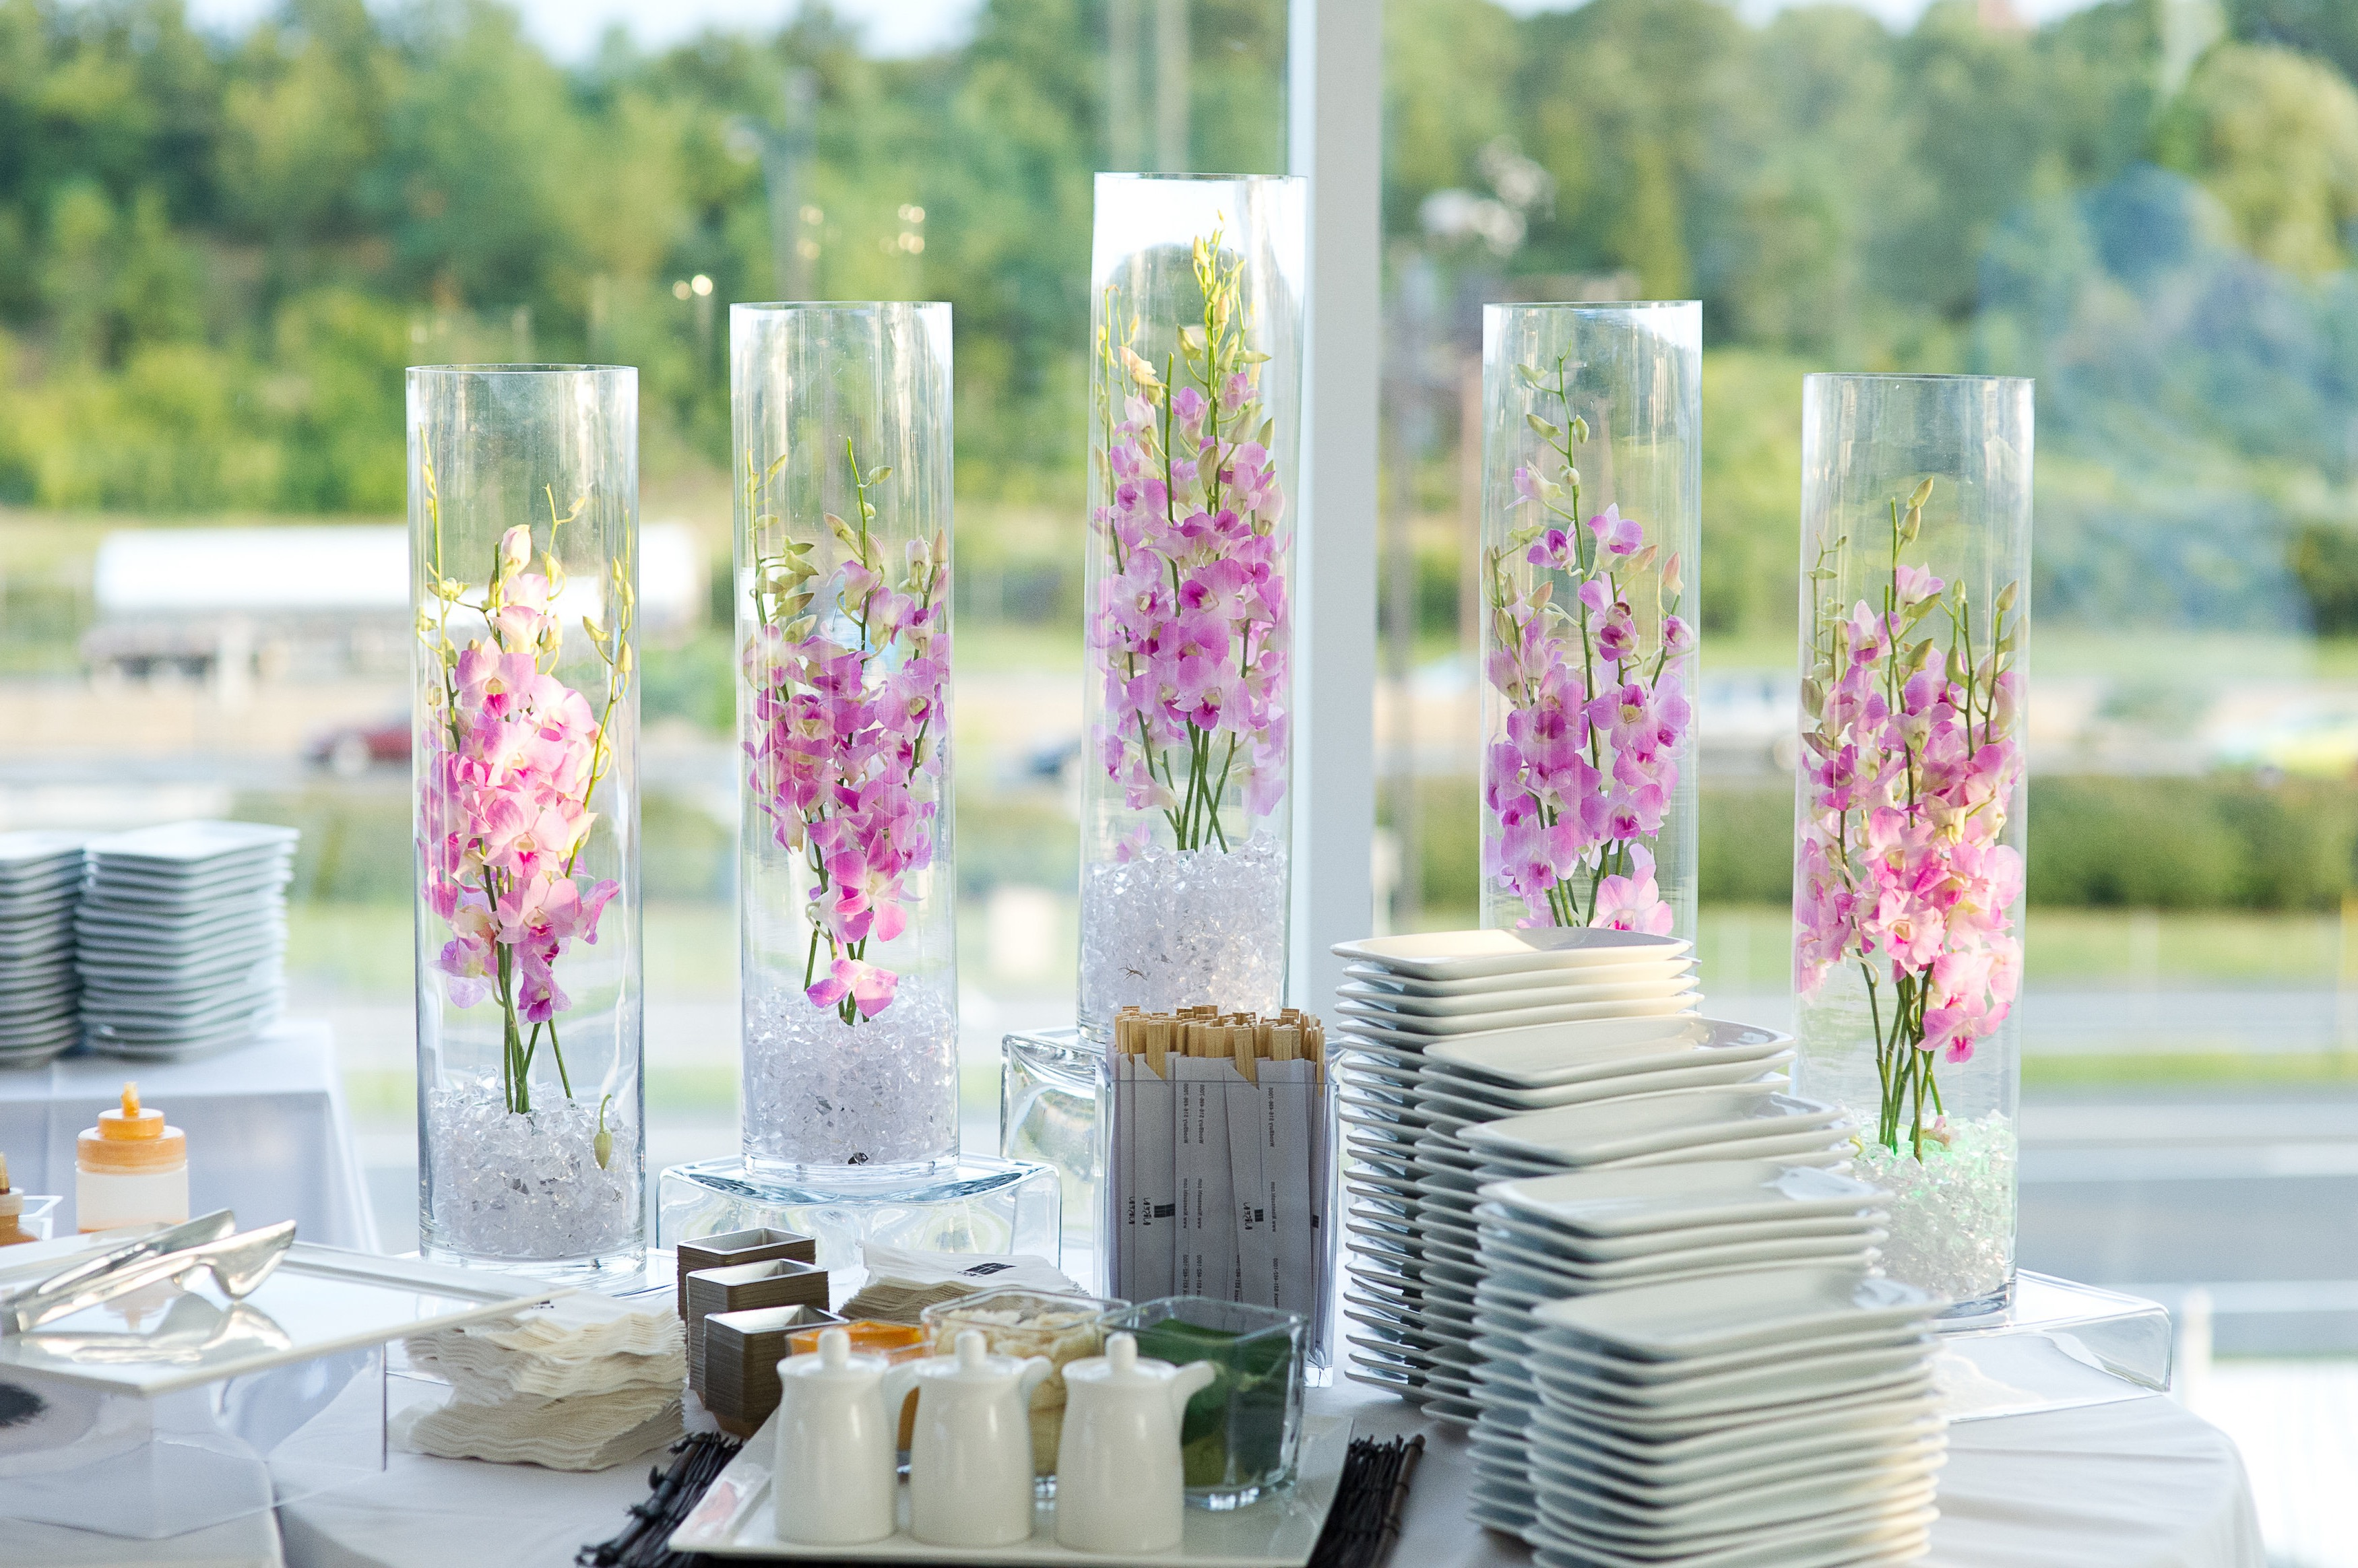 High Submerged Pink Flowers Wedding Centerpieces (Image 5 of 10)